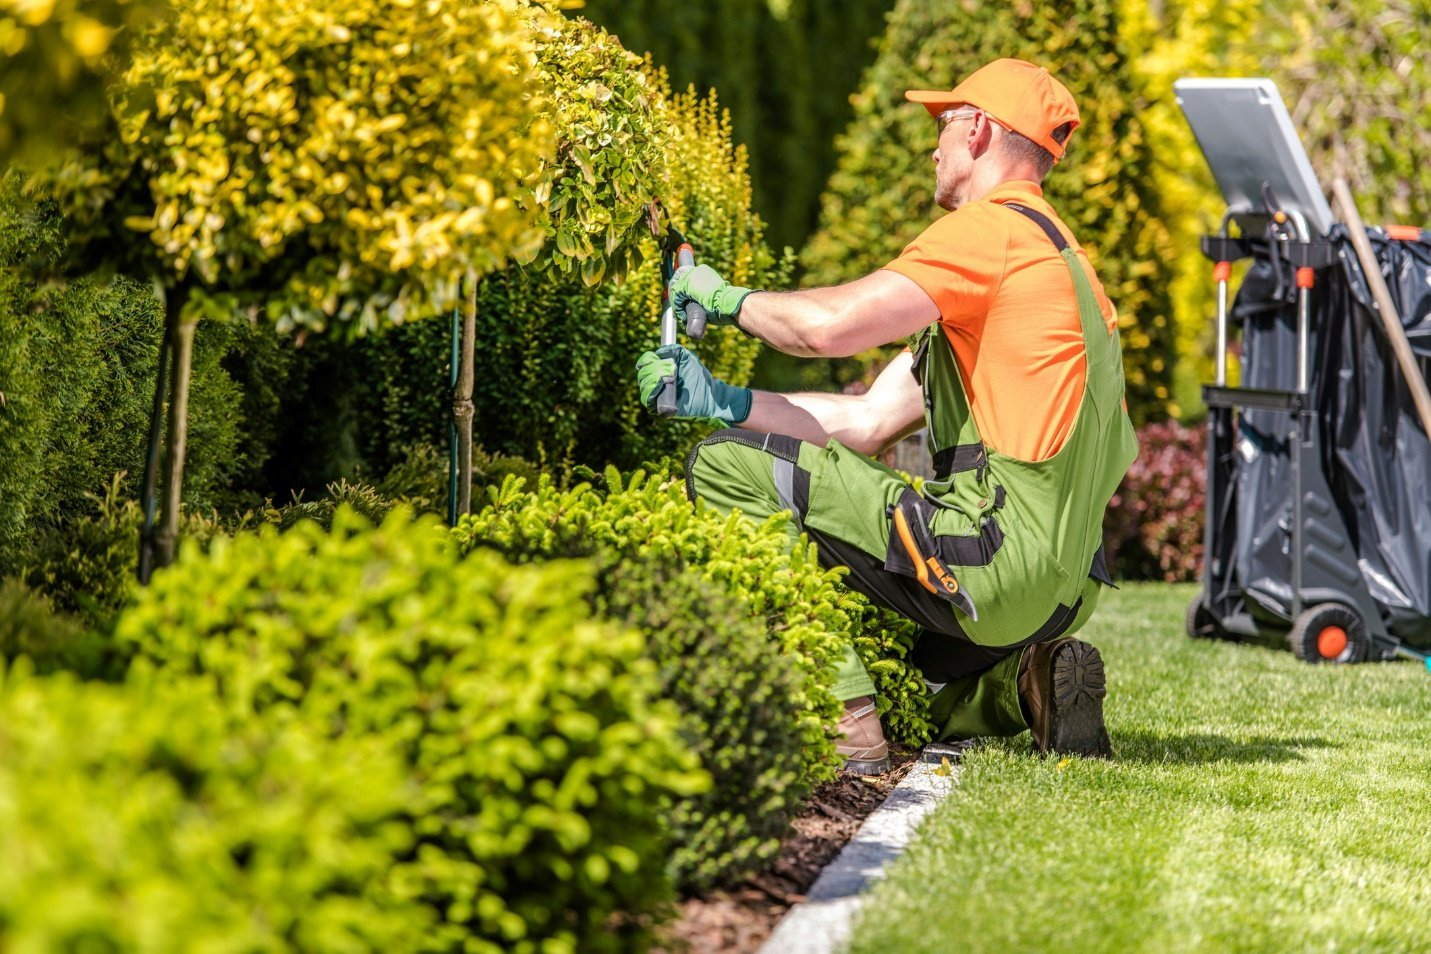 C:\Users\PC\Downloads\Landscaper-1-GettyImages-1166203849.jpg